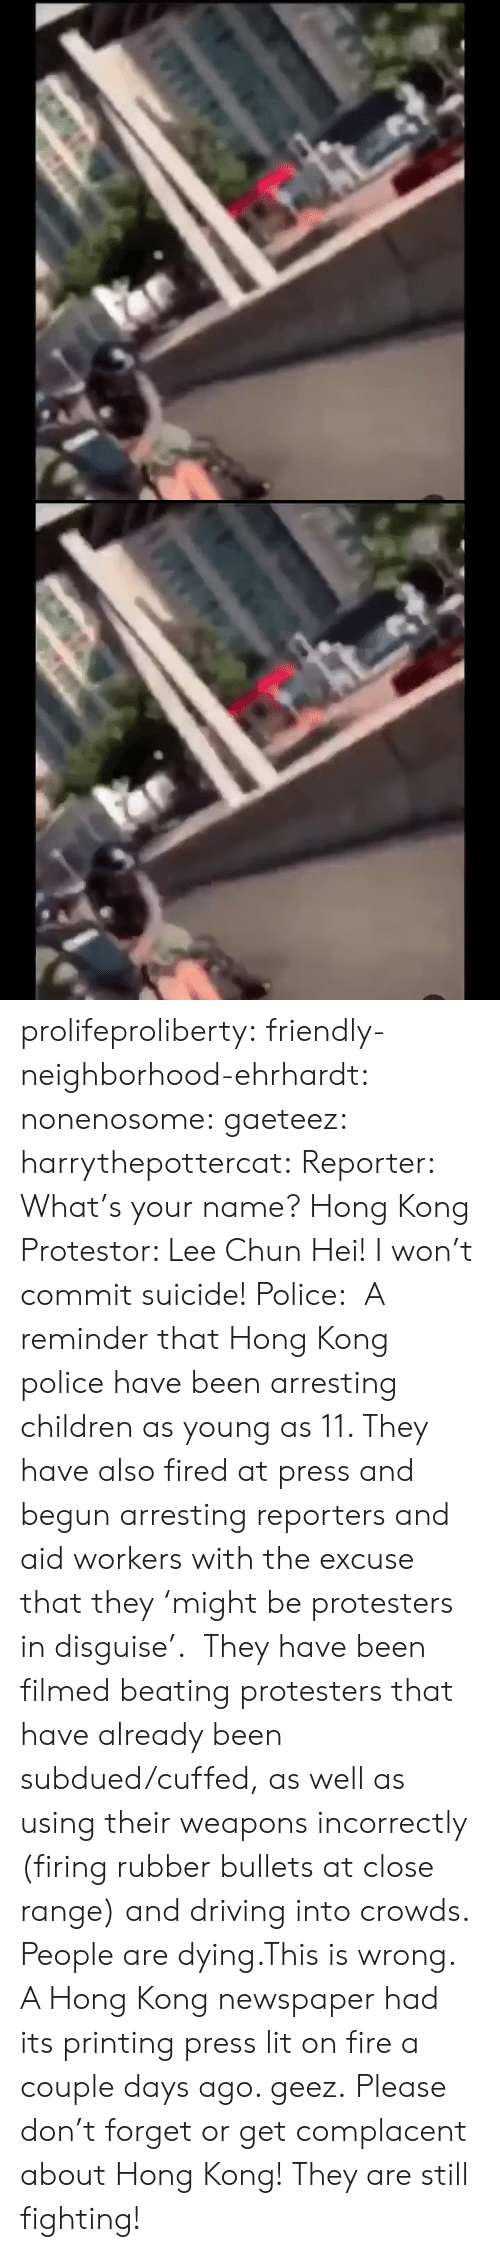 lit: के.  ॥ल prolifeproliberty:  friendly-neighborhood-ehrhardt:  nonenosome:  gaeteez:   harrythepottercat:  Reporter: What's your name? Hong Kong Protestor: Lee Chun Hei! I won't commit suicide! Police:    A reminder that Hong Kong police have been arresting children as young as 11. They have also fired at press and begun arresting reporters and aid workers with the excuse that they 'might be protesters in disguise'.  They have been filmed beating protesters that have already been subdued/cuffed, as well as using their weapons incorrectly (firing rubber bullets at close range) and driving into crowds.  People are dying.This is wrong.    A Hong Kong newspaper had its printing press lit on fire a couple days ago.   geez.   Please don't forget or get complacent about Hong Kong! They are still fighting!